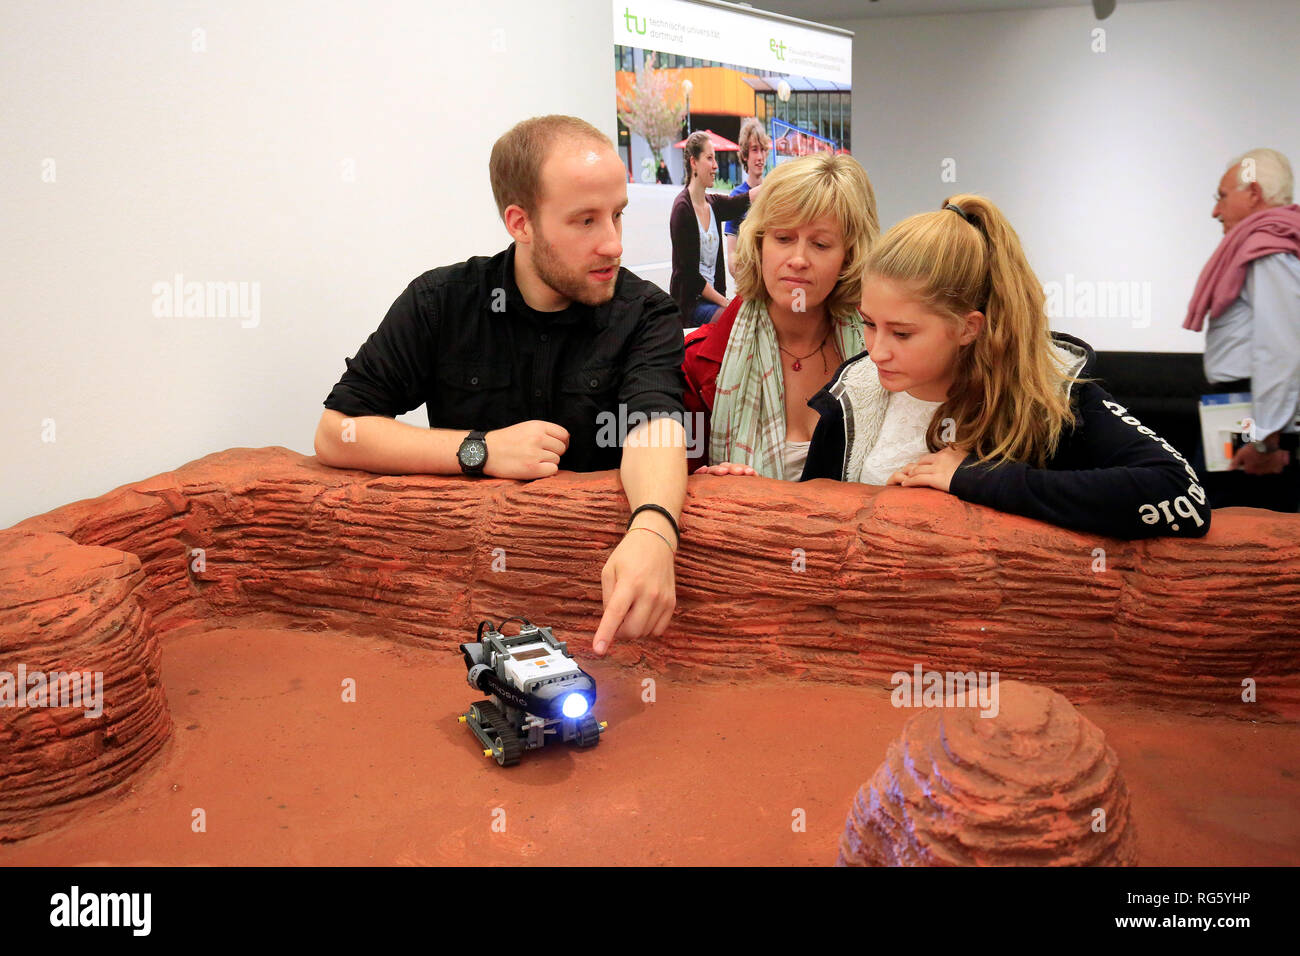 Family visits the exhibition, marvels at a Mars robot at the booth MISSION TO MARS, Wissensnacht Ruhr, a project for the climate metropolis Ruhr 2022, Stock Photo